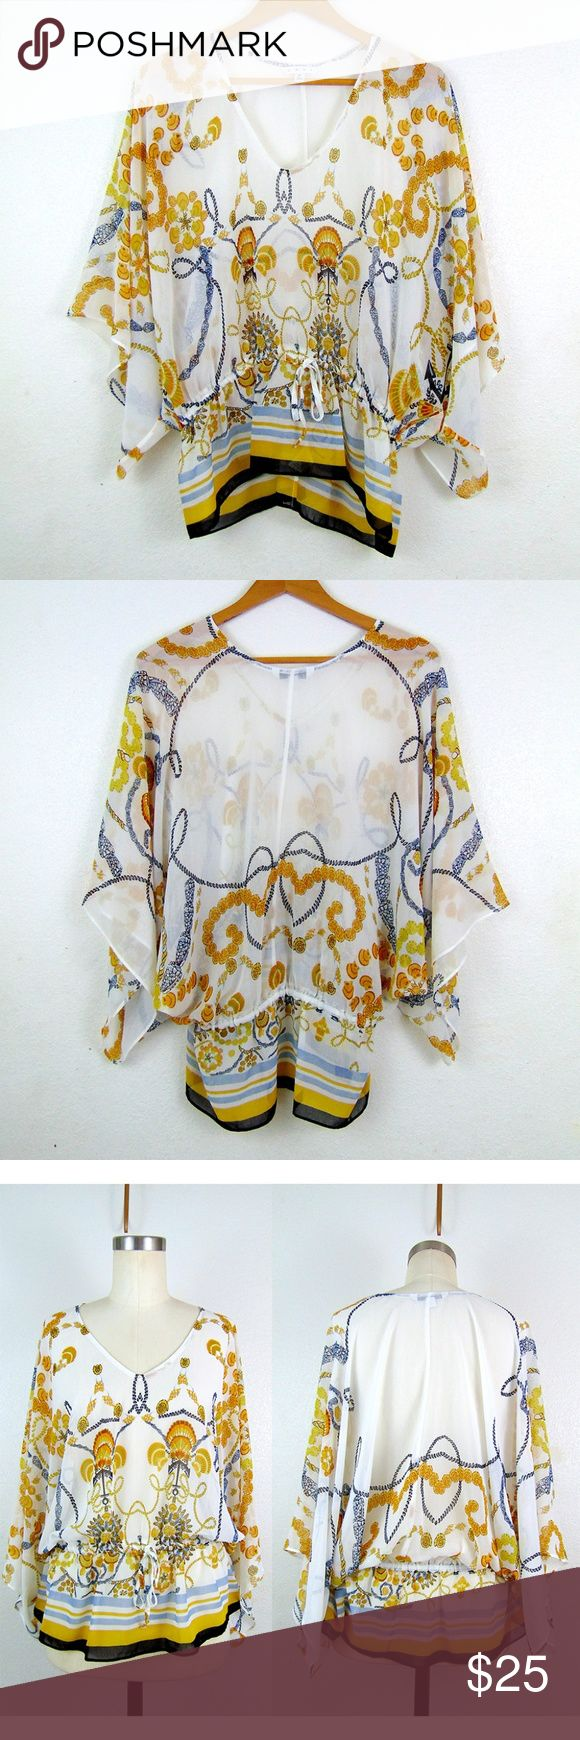 """CAbi Gold Rope Batwing Kimono Sleeve Print Blouse Very pretty white Cabi top with a kimono/batwing type sleeve, a nautical rope print in gold and navy, and a wasit tie for adjusment.   Excellent condition with no signs of wear!! No rips/holes/tears. No stains or fading See images.  Measurements (laid flat, unstretched): Top is loose and oversized.  Couldn't figure out how to measure.  Length 26"""" Waist 16"""" at cinched waist, can be bigger Hem 24"""" Material Stretch? no  Questions? Offers…"""